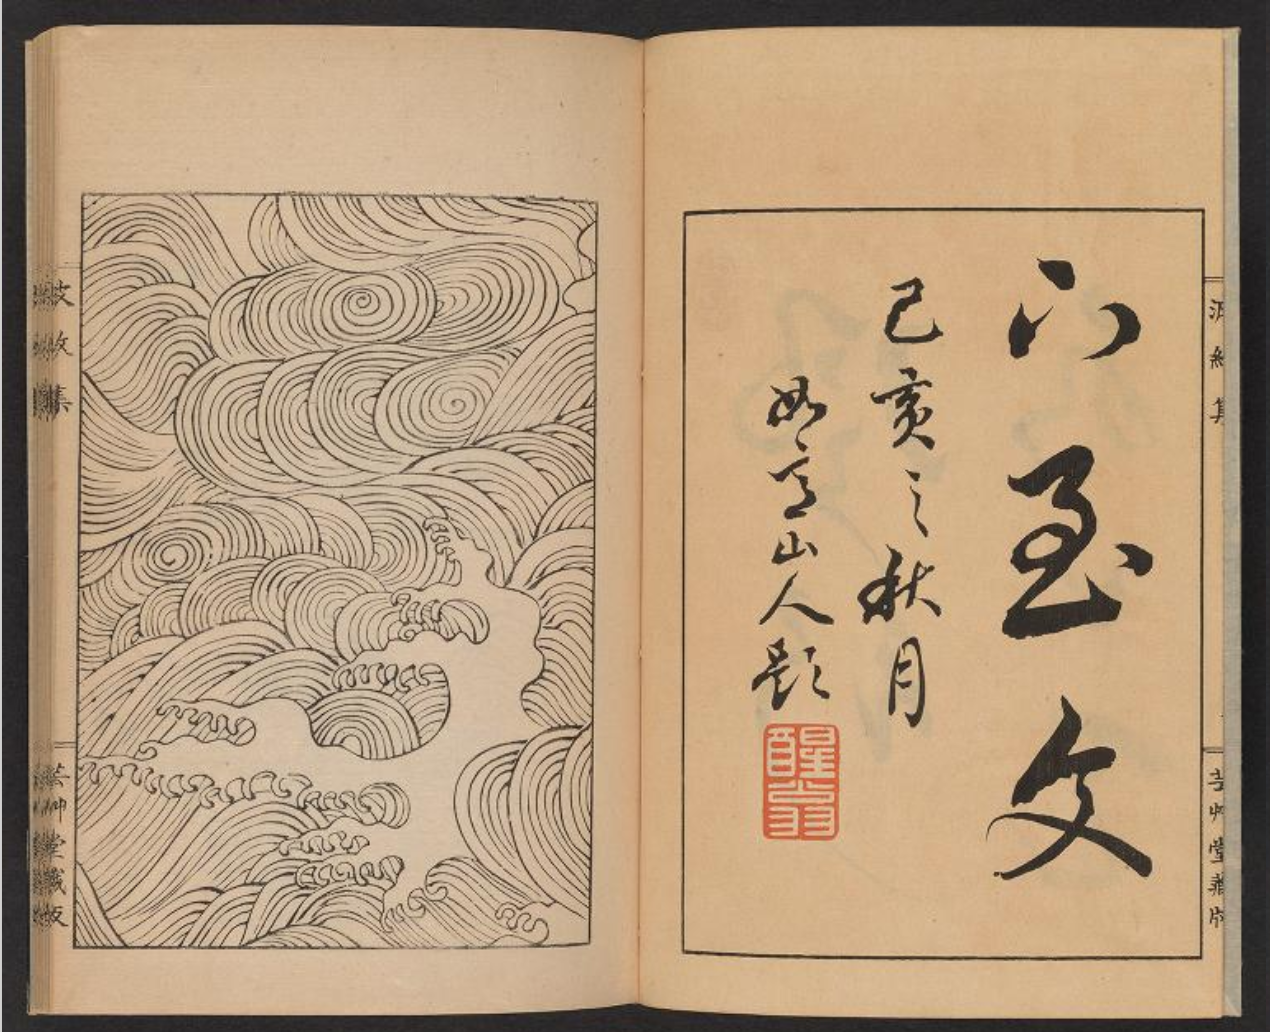 You can now download these traditional Japanese wave drawings for free